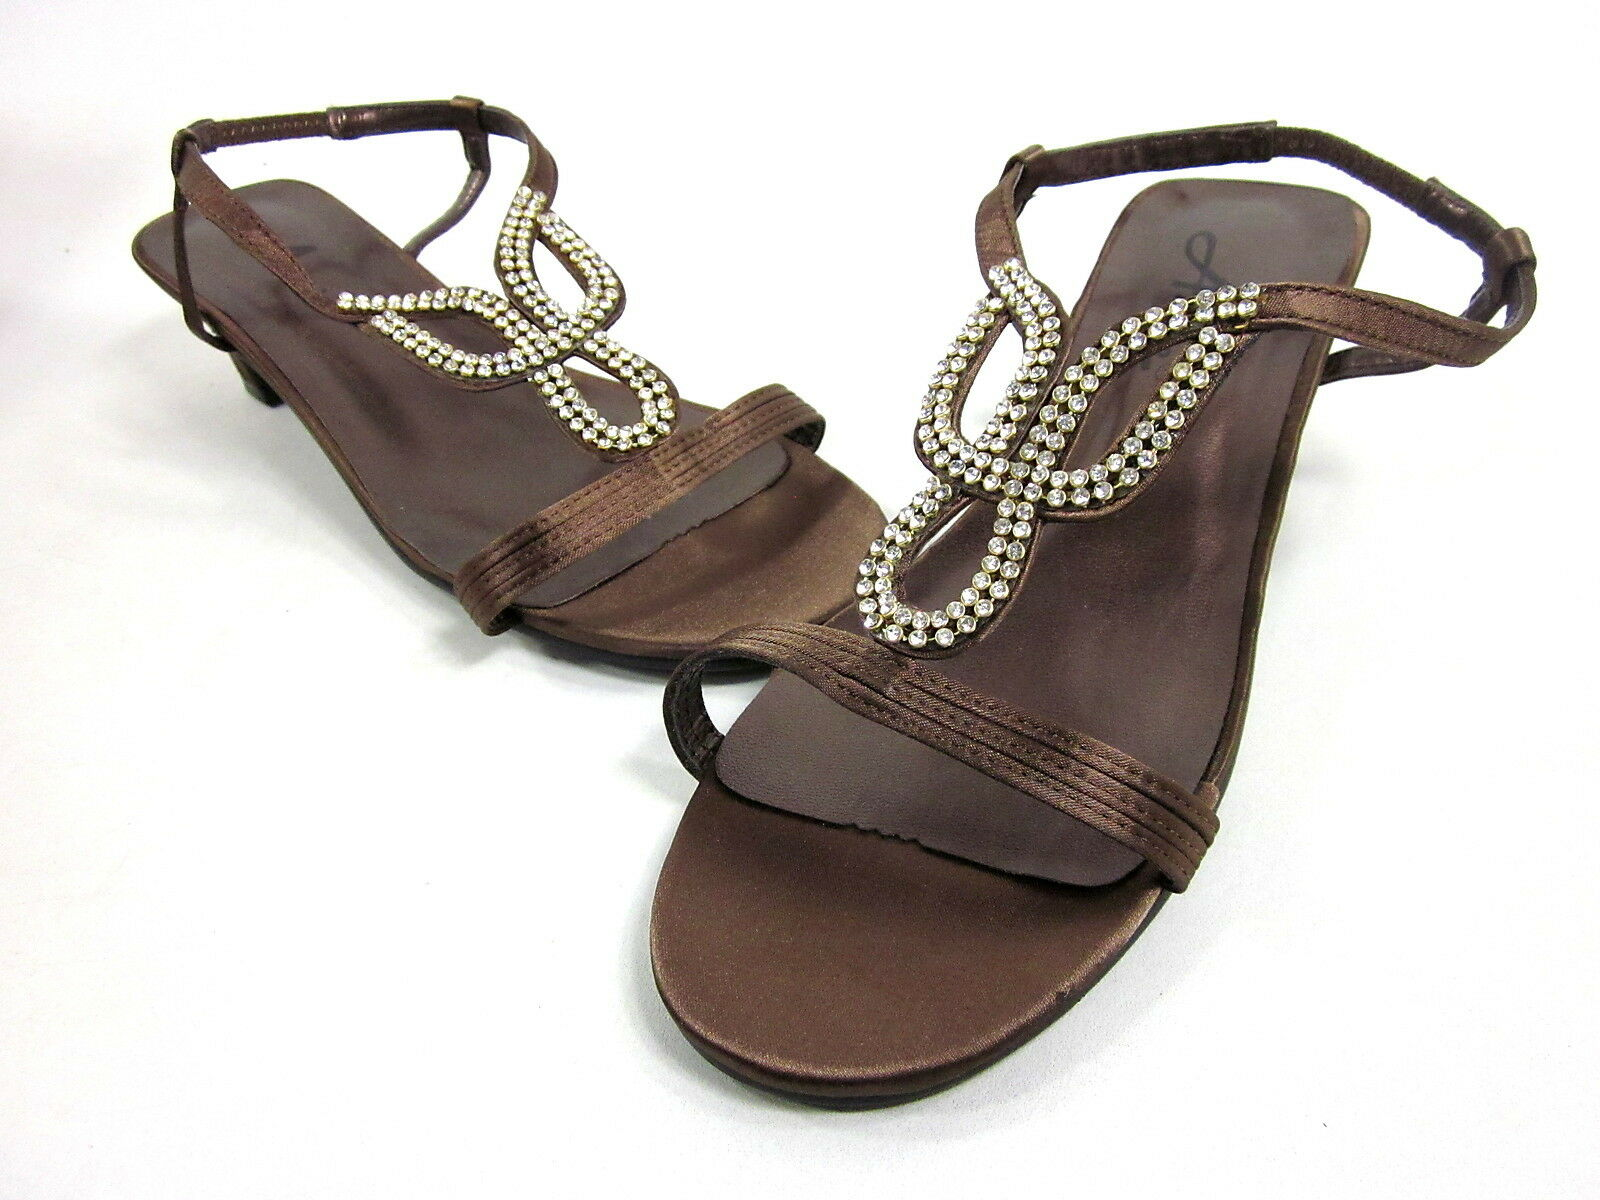 ANNIE SHOES, LIZZY SANDAL, BRONZE SATIN, WOMENS, US THE 7.5 WW, NEW WITHOUT THE US BOX 9f66d8